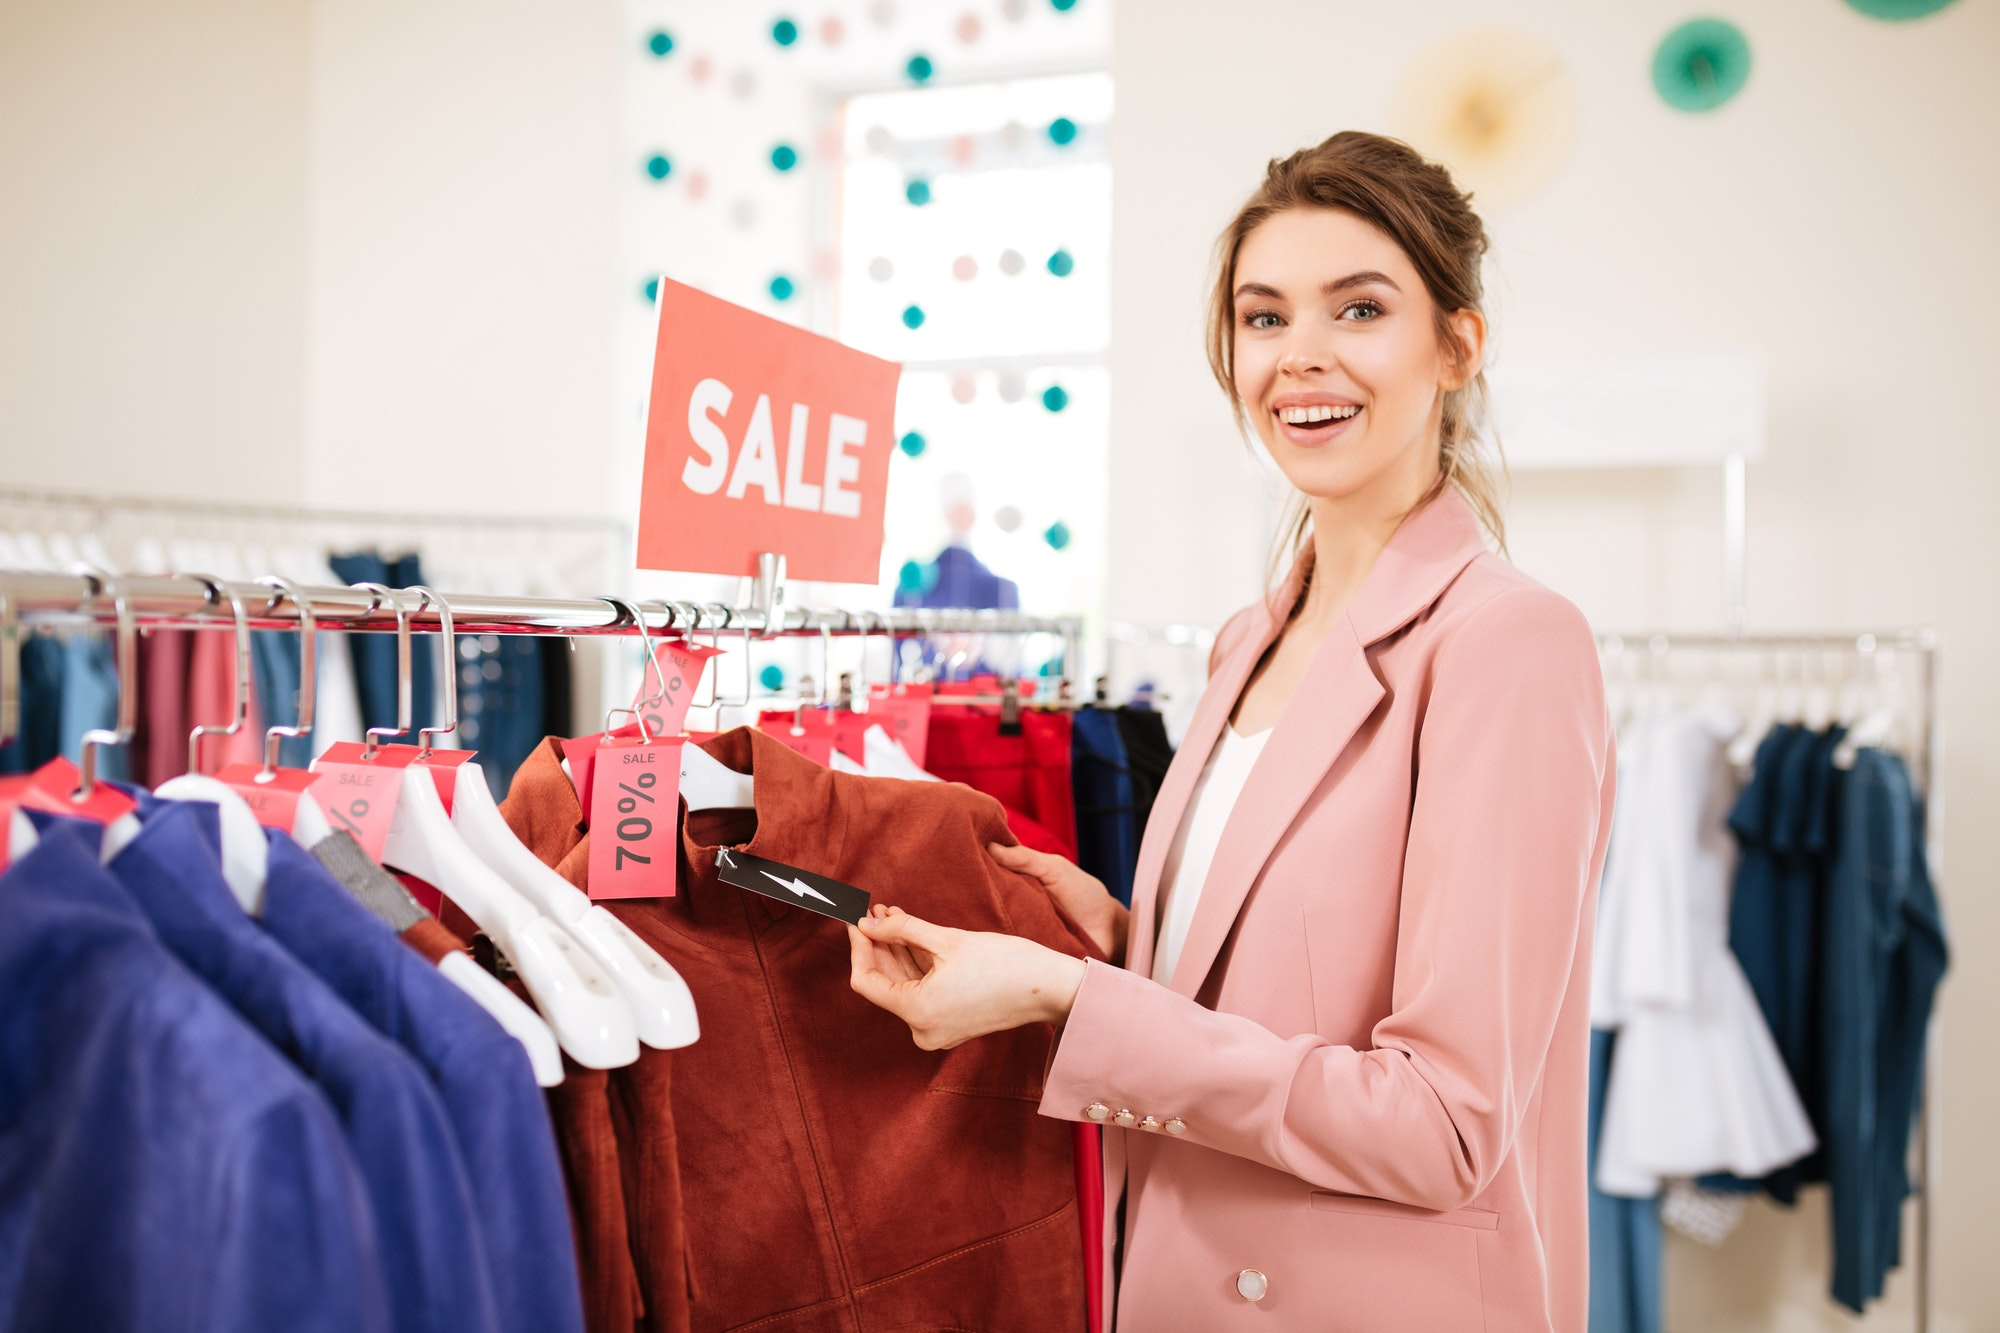 Smiling lady that find something on sale in clothes store